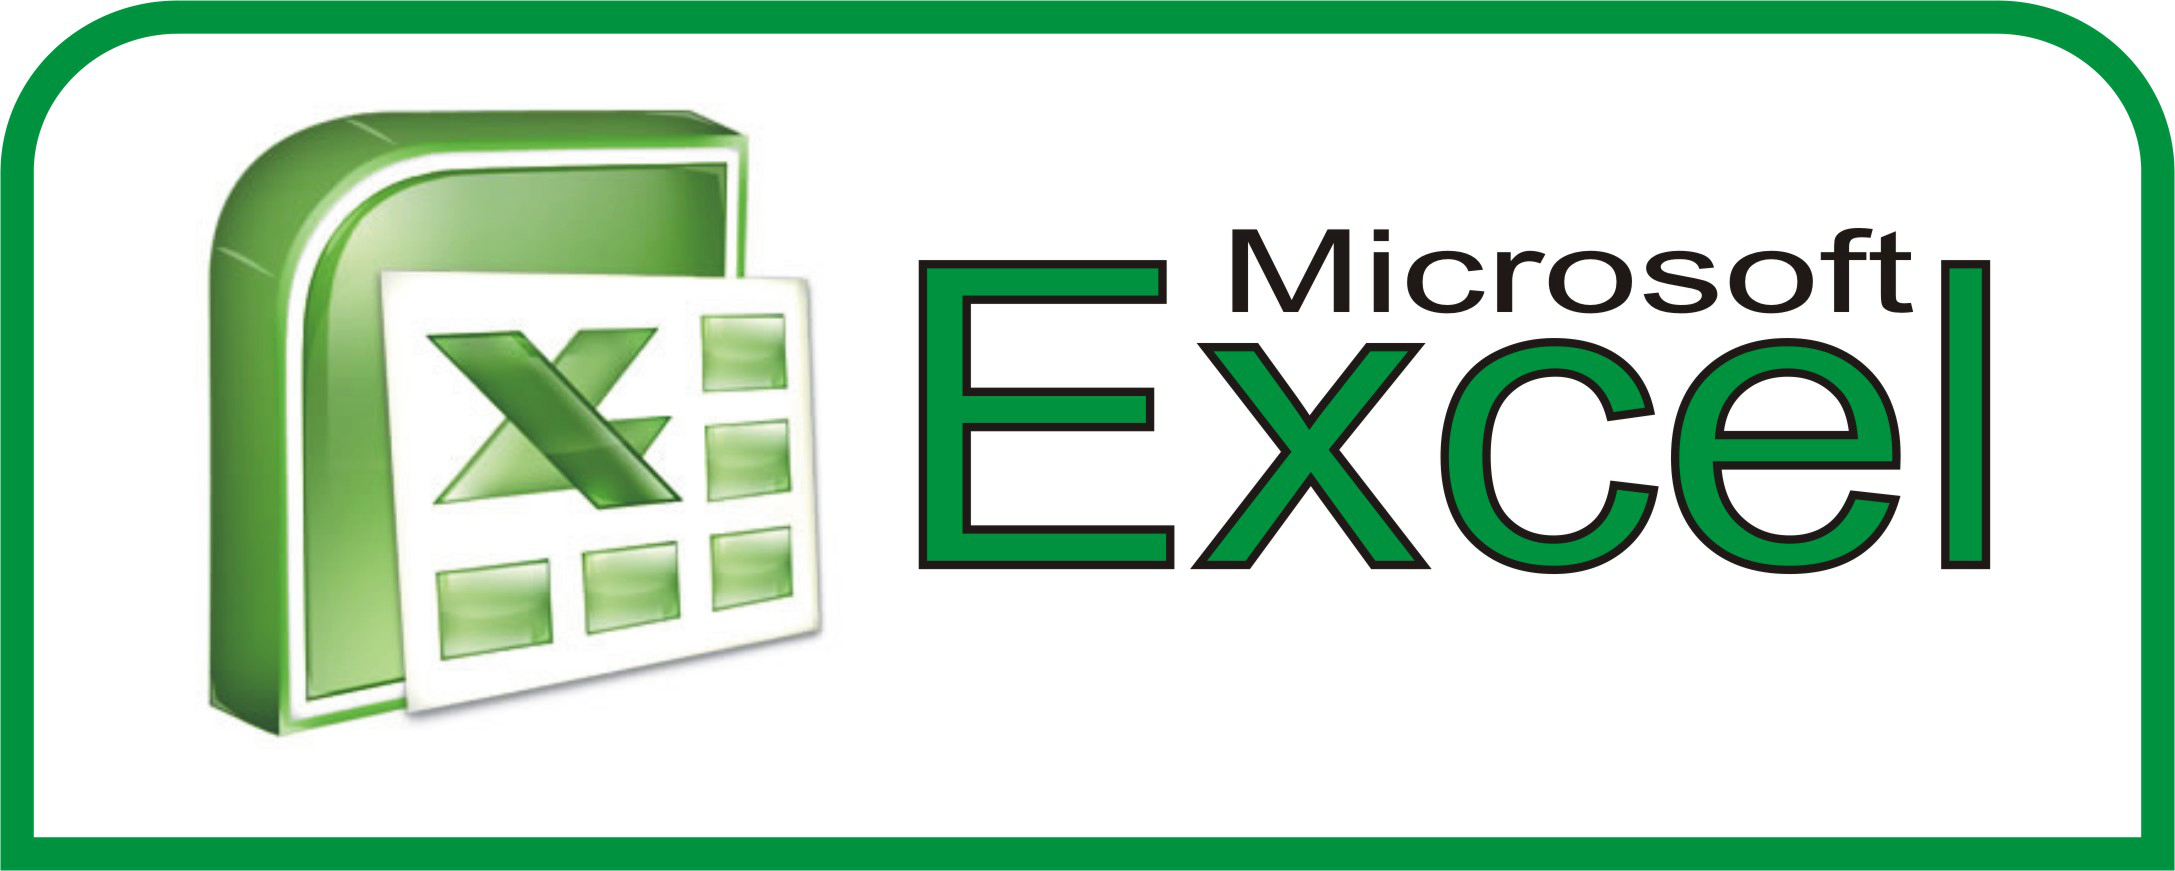 Ediblewildsus  Marvelous  Excel Shortcuts You Probably Didnt Know About  Techdissected With Excellent Freezing Columns In Excel Besides Insert Drop Down Menu In Excel Furthermore Excel Evaluate Formula With Beautiful Excel String Length Also How To Split One Cell Into Two In Excel In Addition Excel Orthopedics Woburn Ma And Sign In Sheet Template Excel As Well As Array Formula In Excel Additionally How To Do Percentage In Excel From Techdissectedcom With Ediblewildsus  Excellent  Excel Shortcuts You Probably Didnt Know About  Techdissected With Beautiful Freezing Columns In Excel Besides Insert Drop Down Menu In Excel Furthermore Excel Evaluate Formula And Marvelous Excel String Length Also How To Split One Cell Into Two In Excel In Addition Excel Orthopedics Woburn Ma From Techdissectedcom